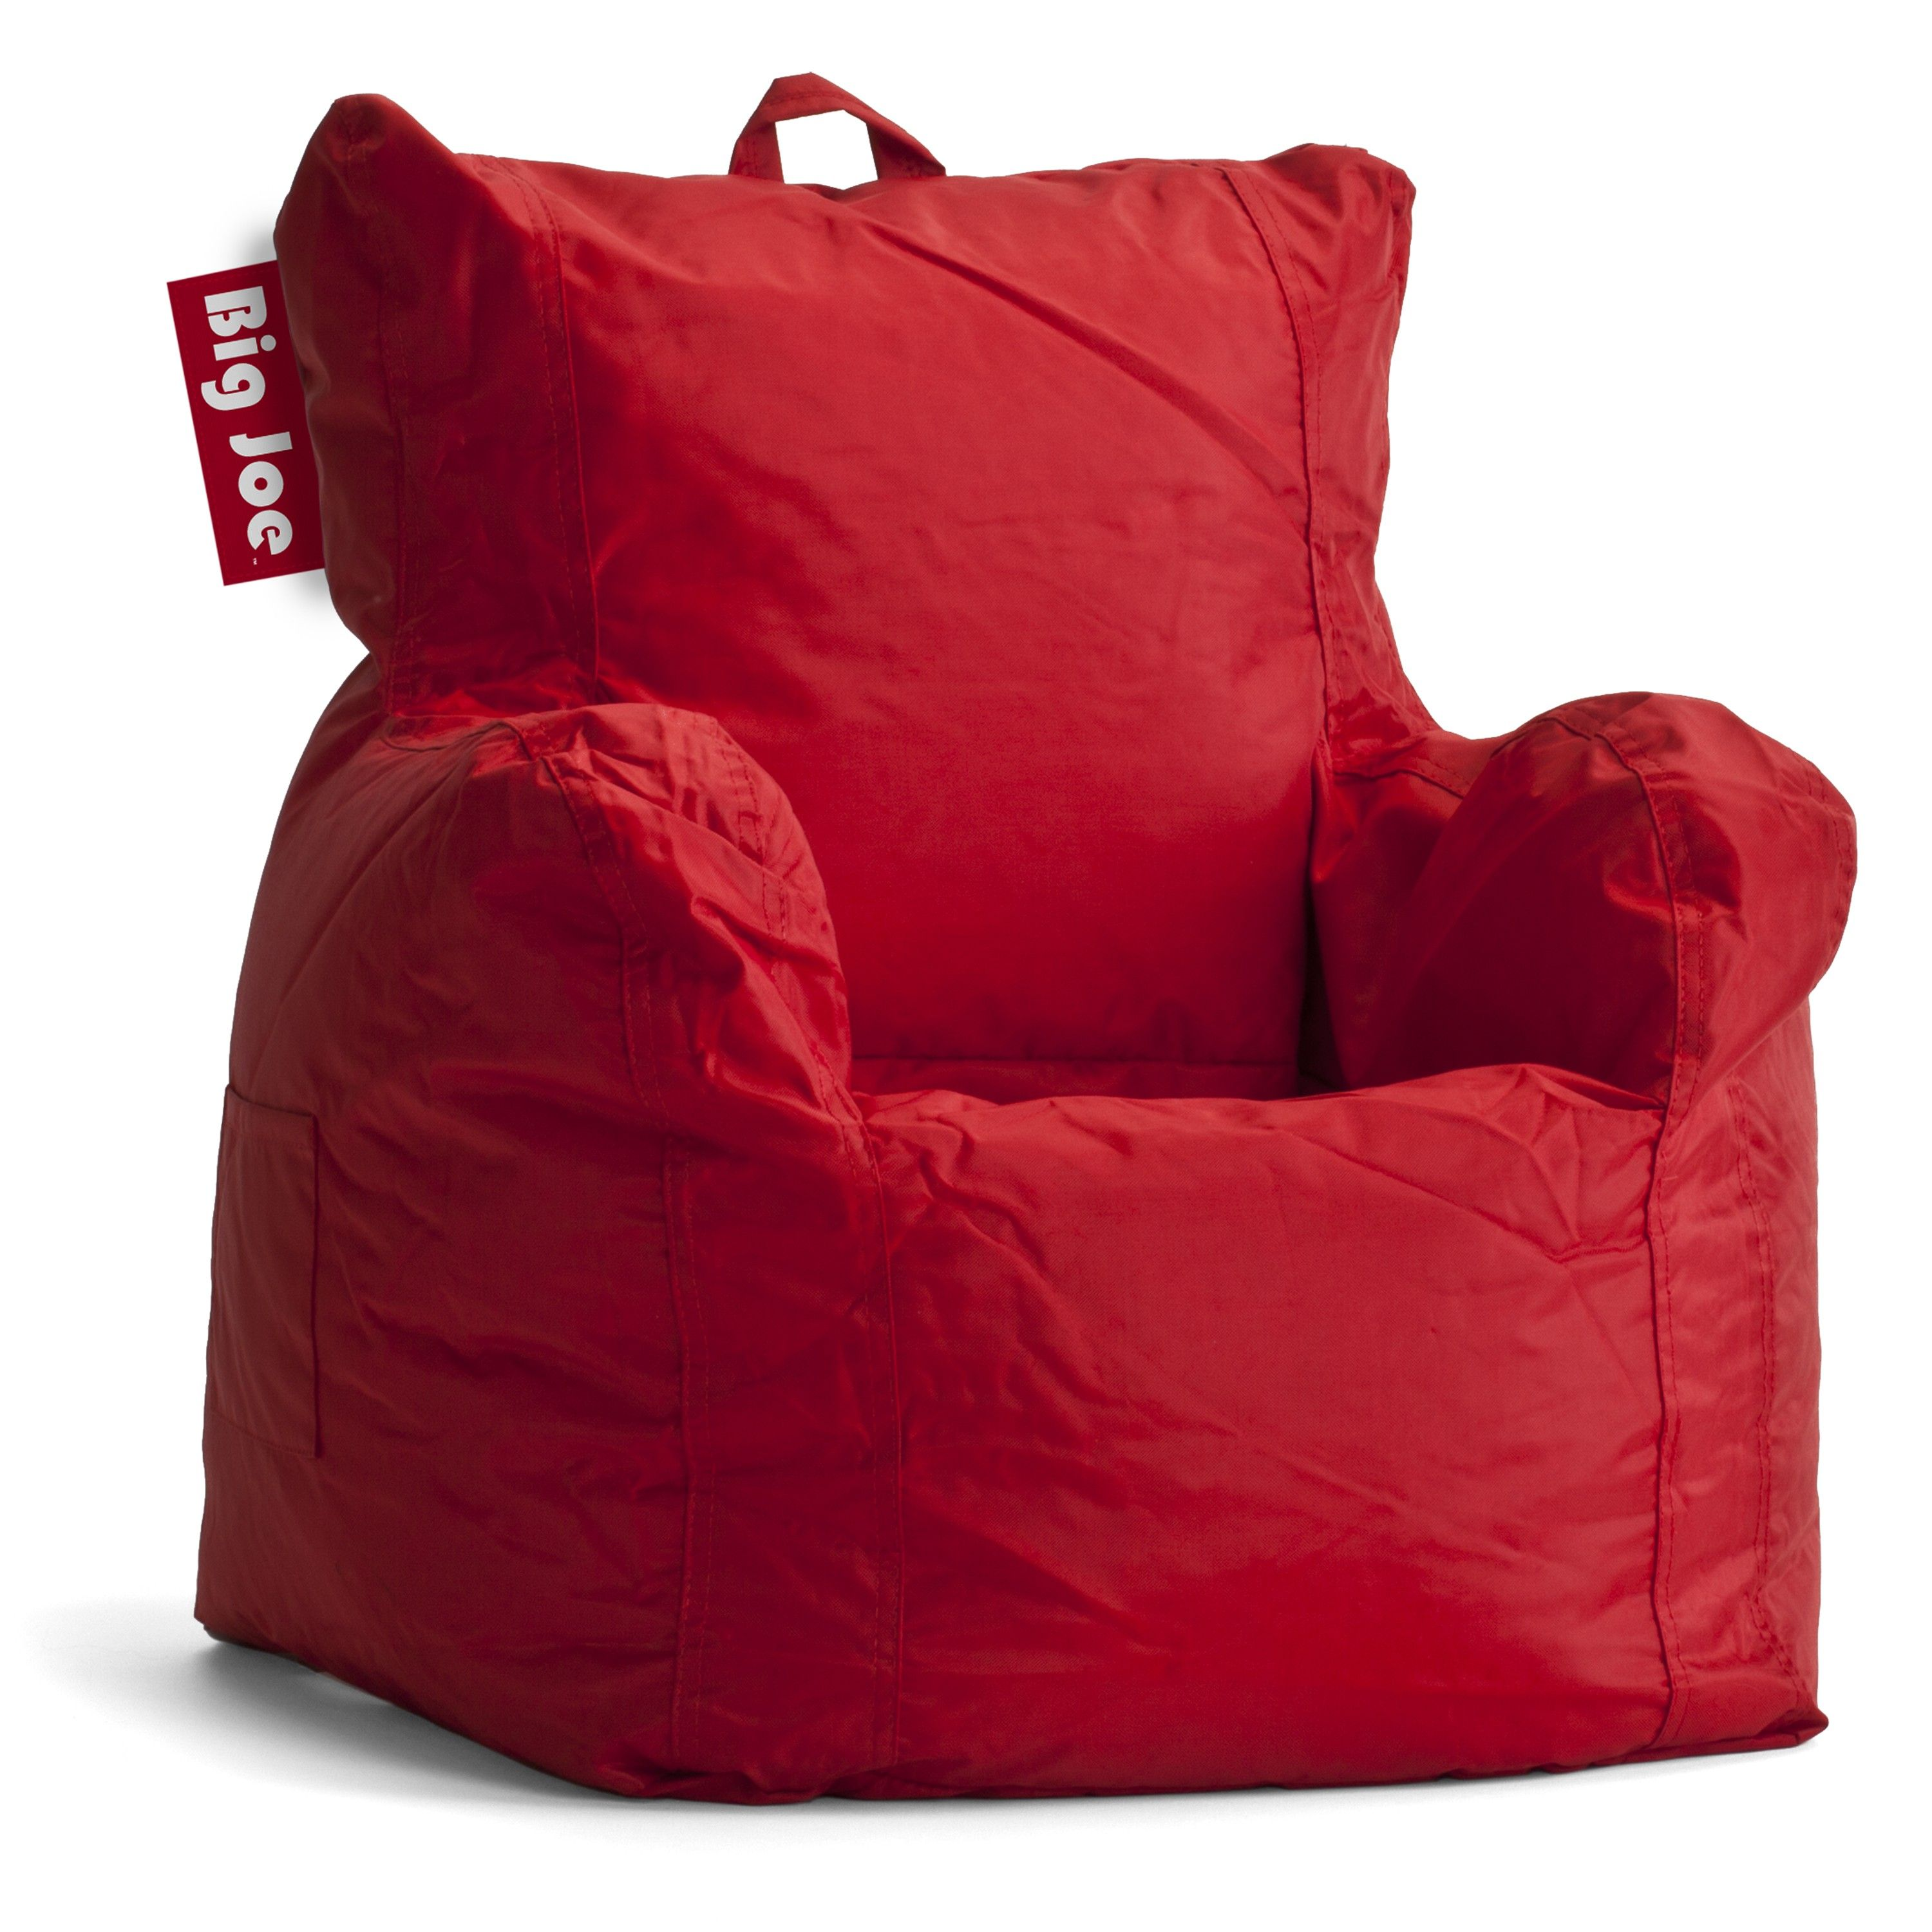 big joe kids chair img chairs for sale this tough cuddle bean bag is the solution to so many needs a perfectly sized your child fun piece of furniture that can